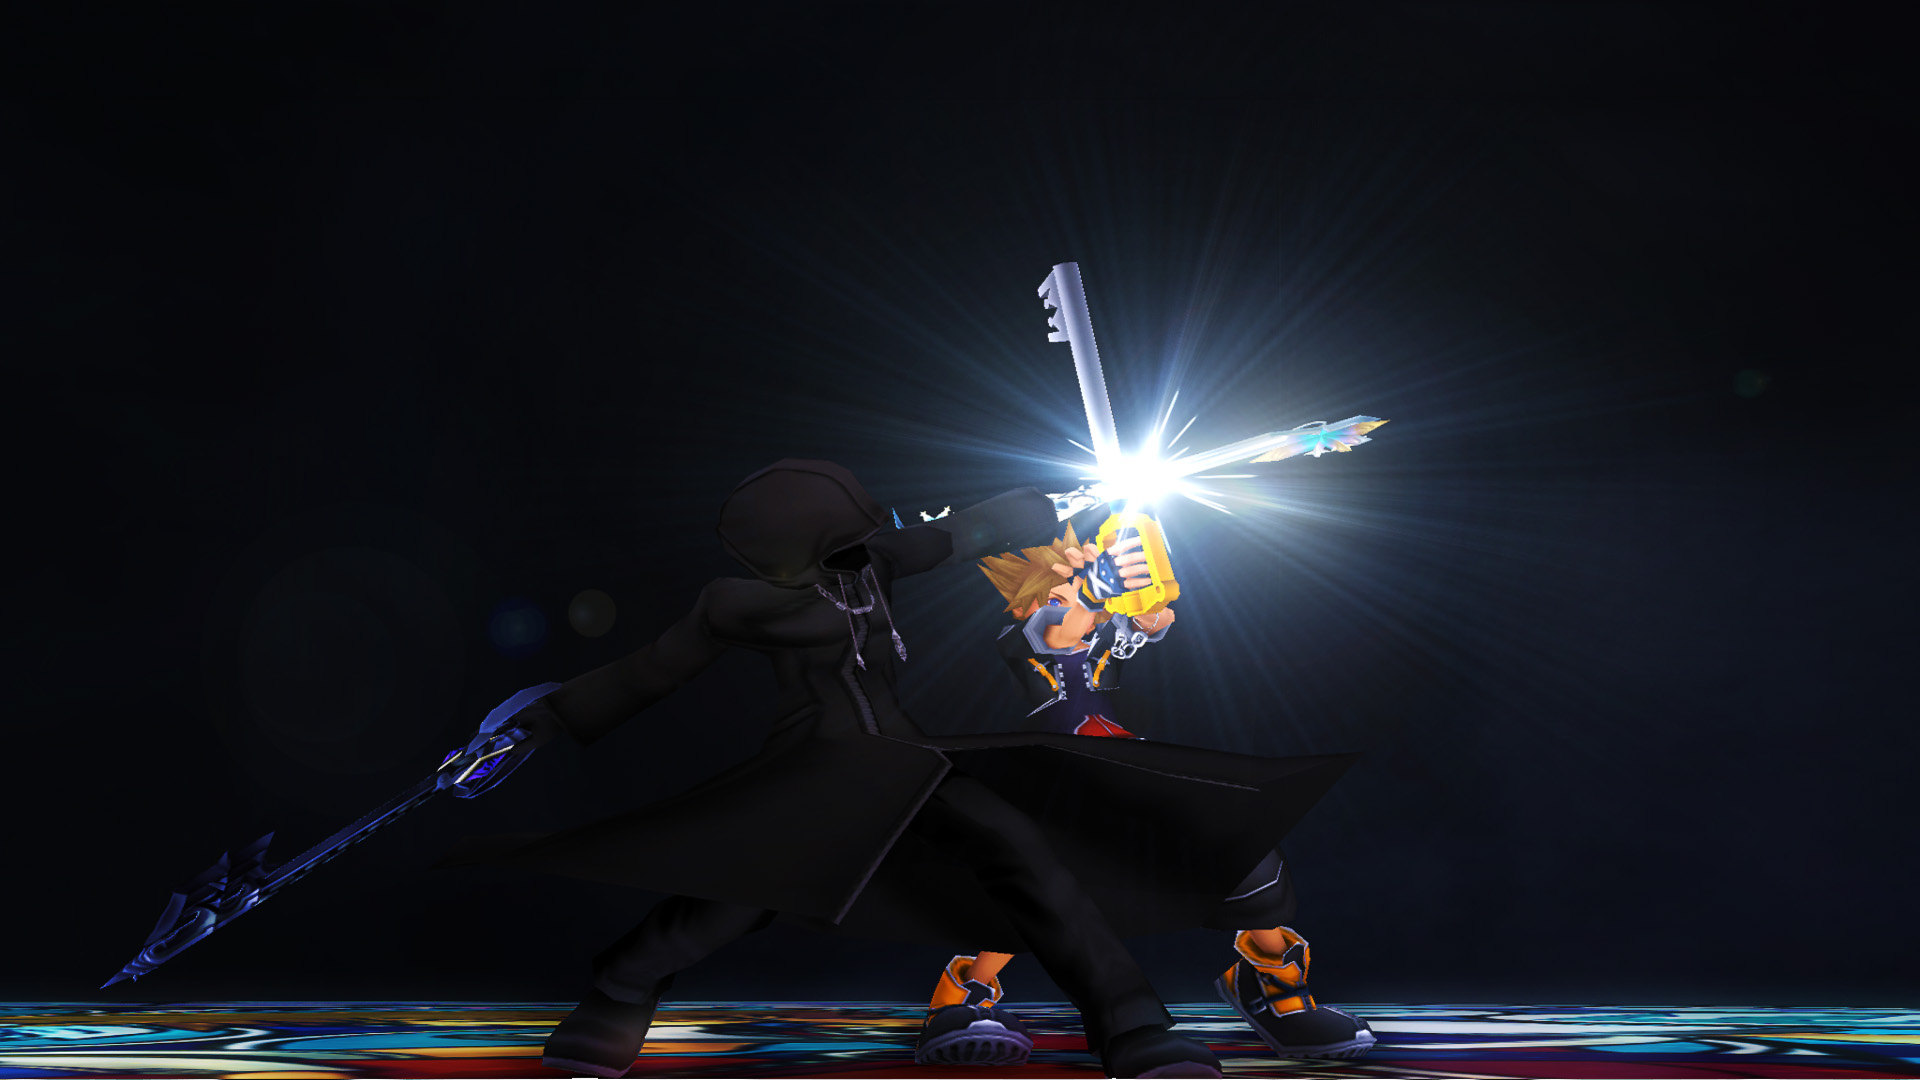 Kingdom Hearts Computer Wallpapers Desktop Backgrounds 1920x1080